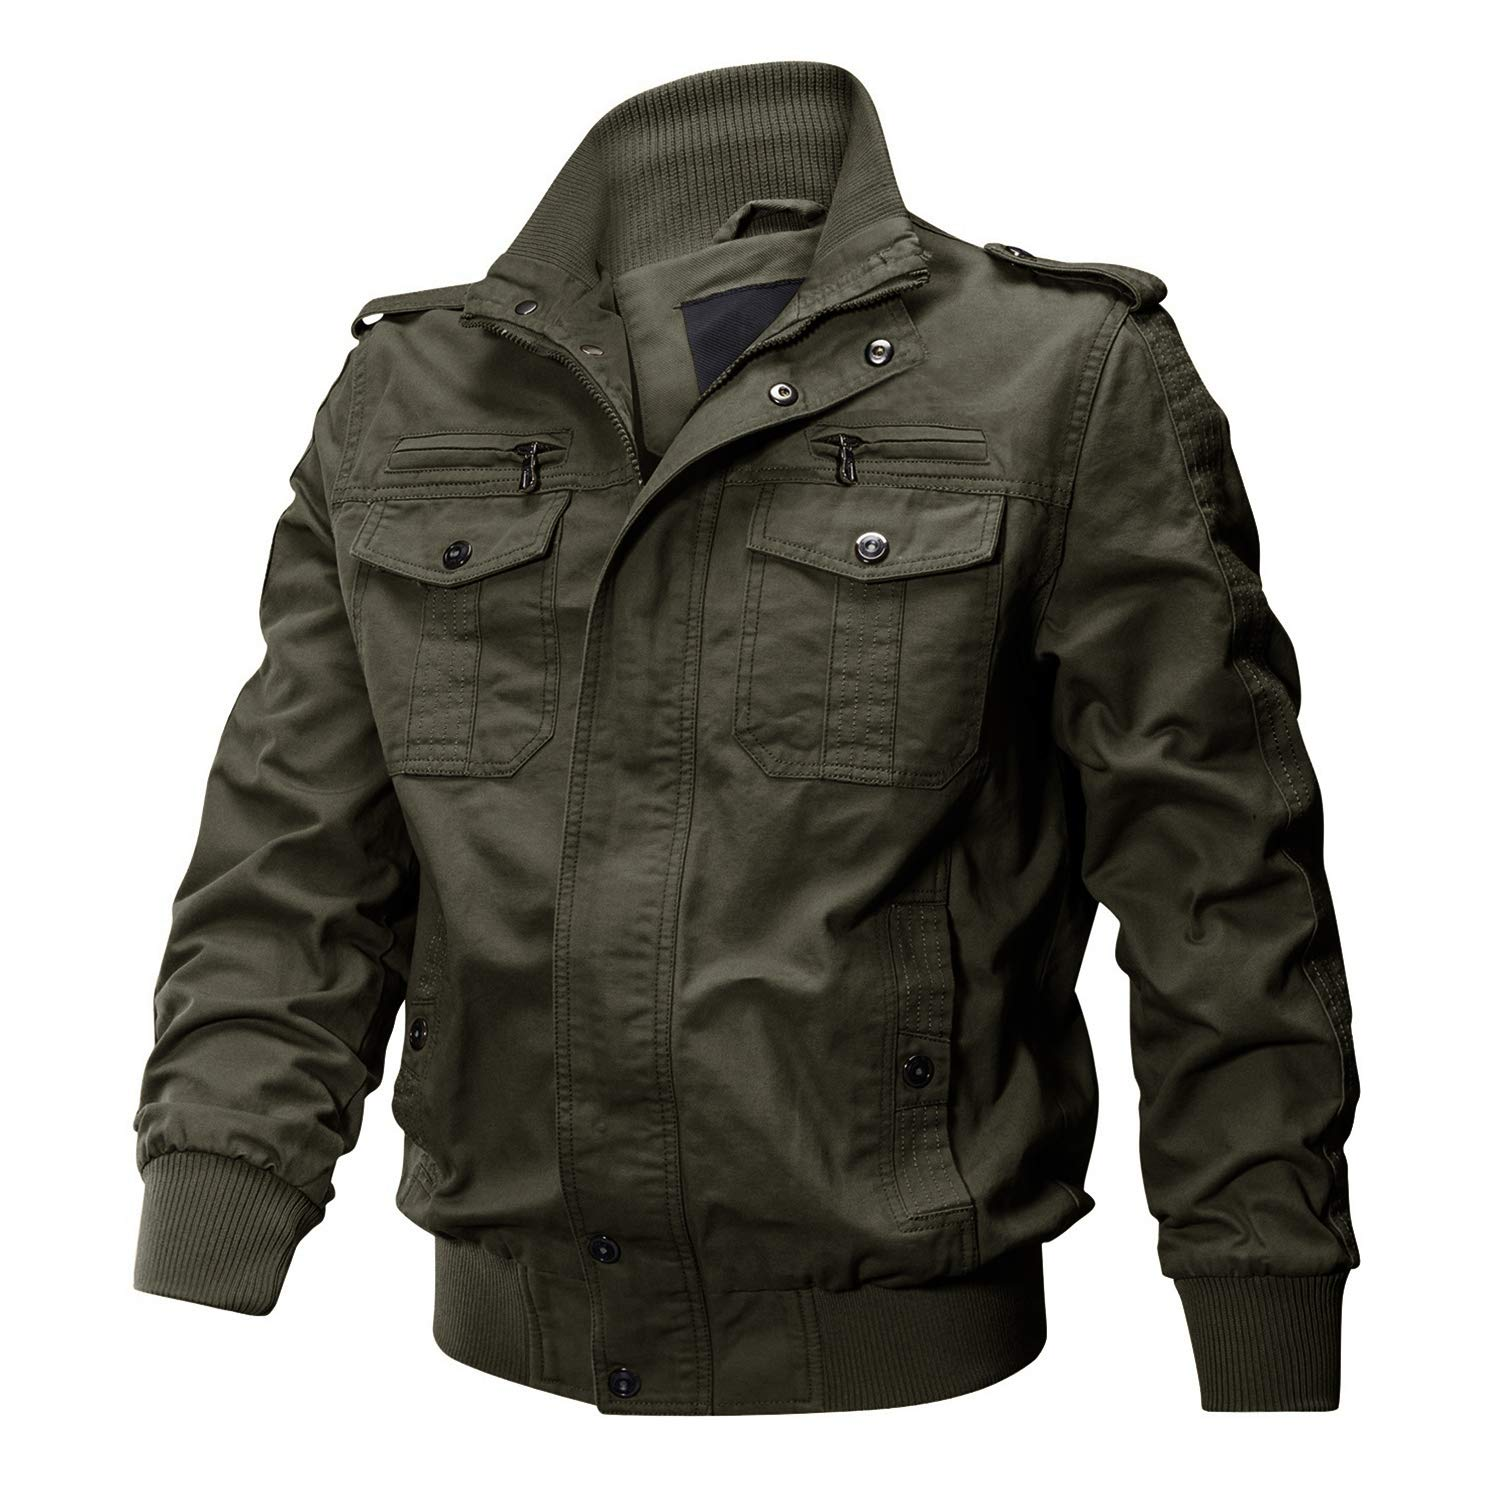 f3d692aa38bde Galleon - CRYSULLY Men s Fall Jackets Multi Pocket Tactical Cotton Safari  Jacket Casual Cargo Jacket Army Green